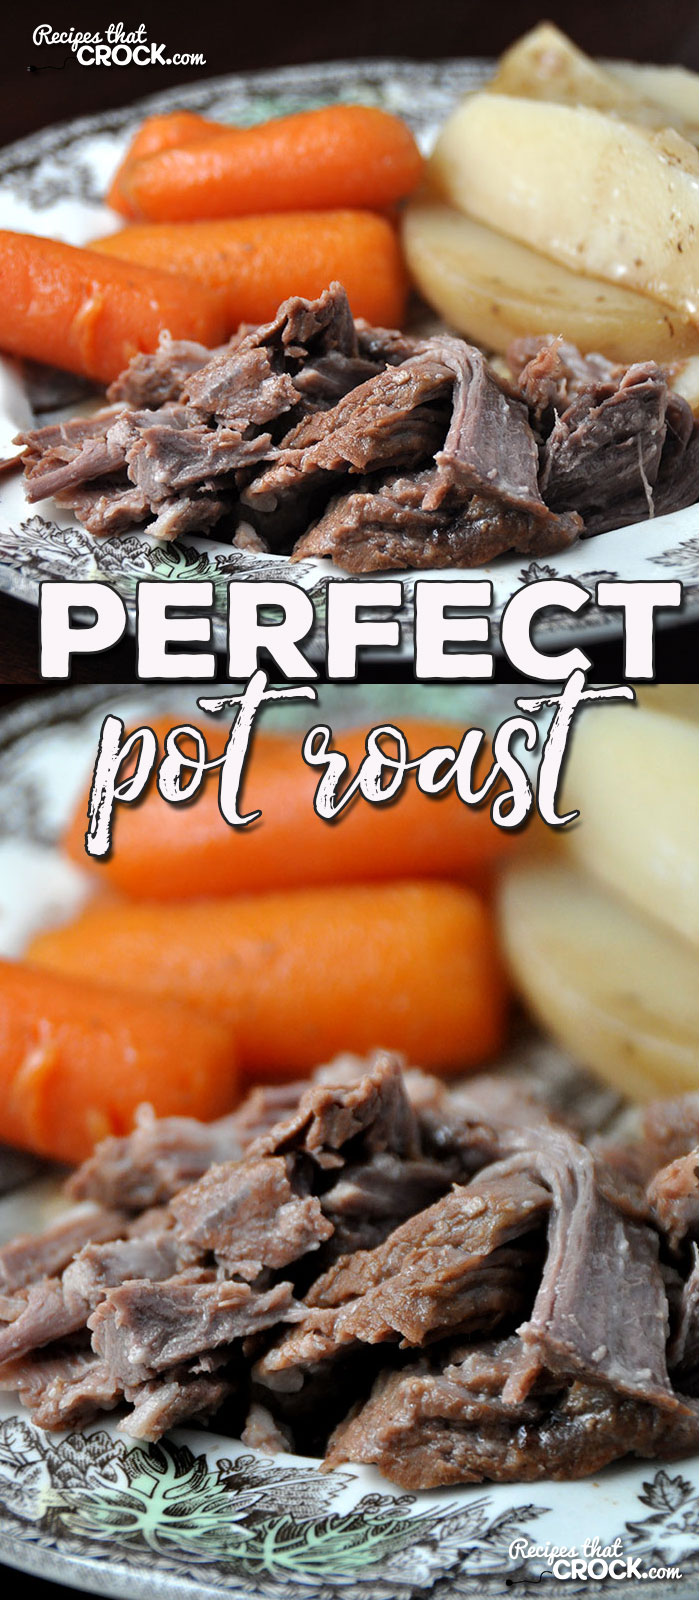 Do you love our Perfect Crock Pot Roast, but want to make it in your oven? Well, you are in luck! This Perfect Pot Roast is Momma's recipe for the oven!